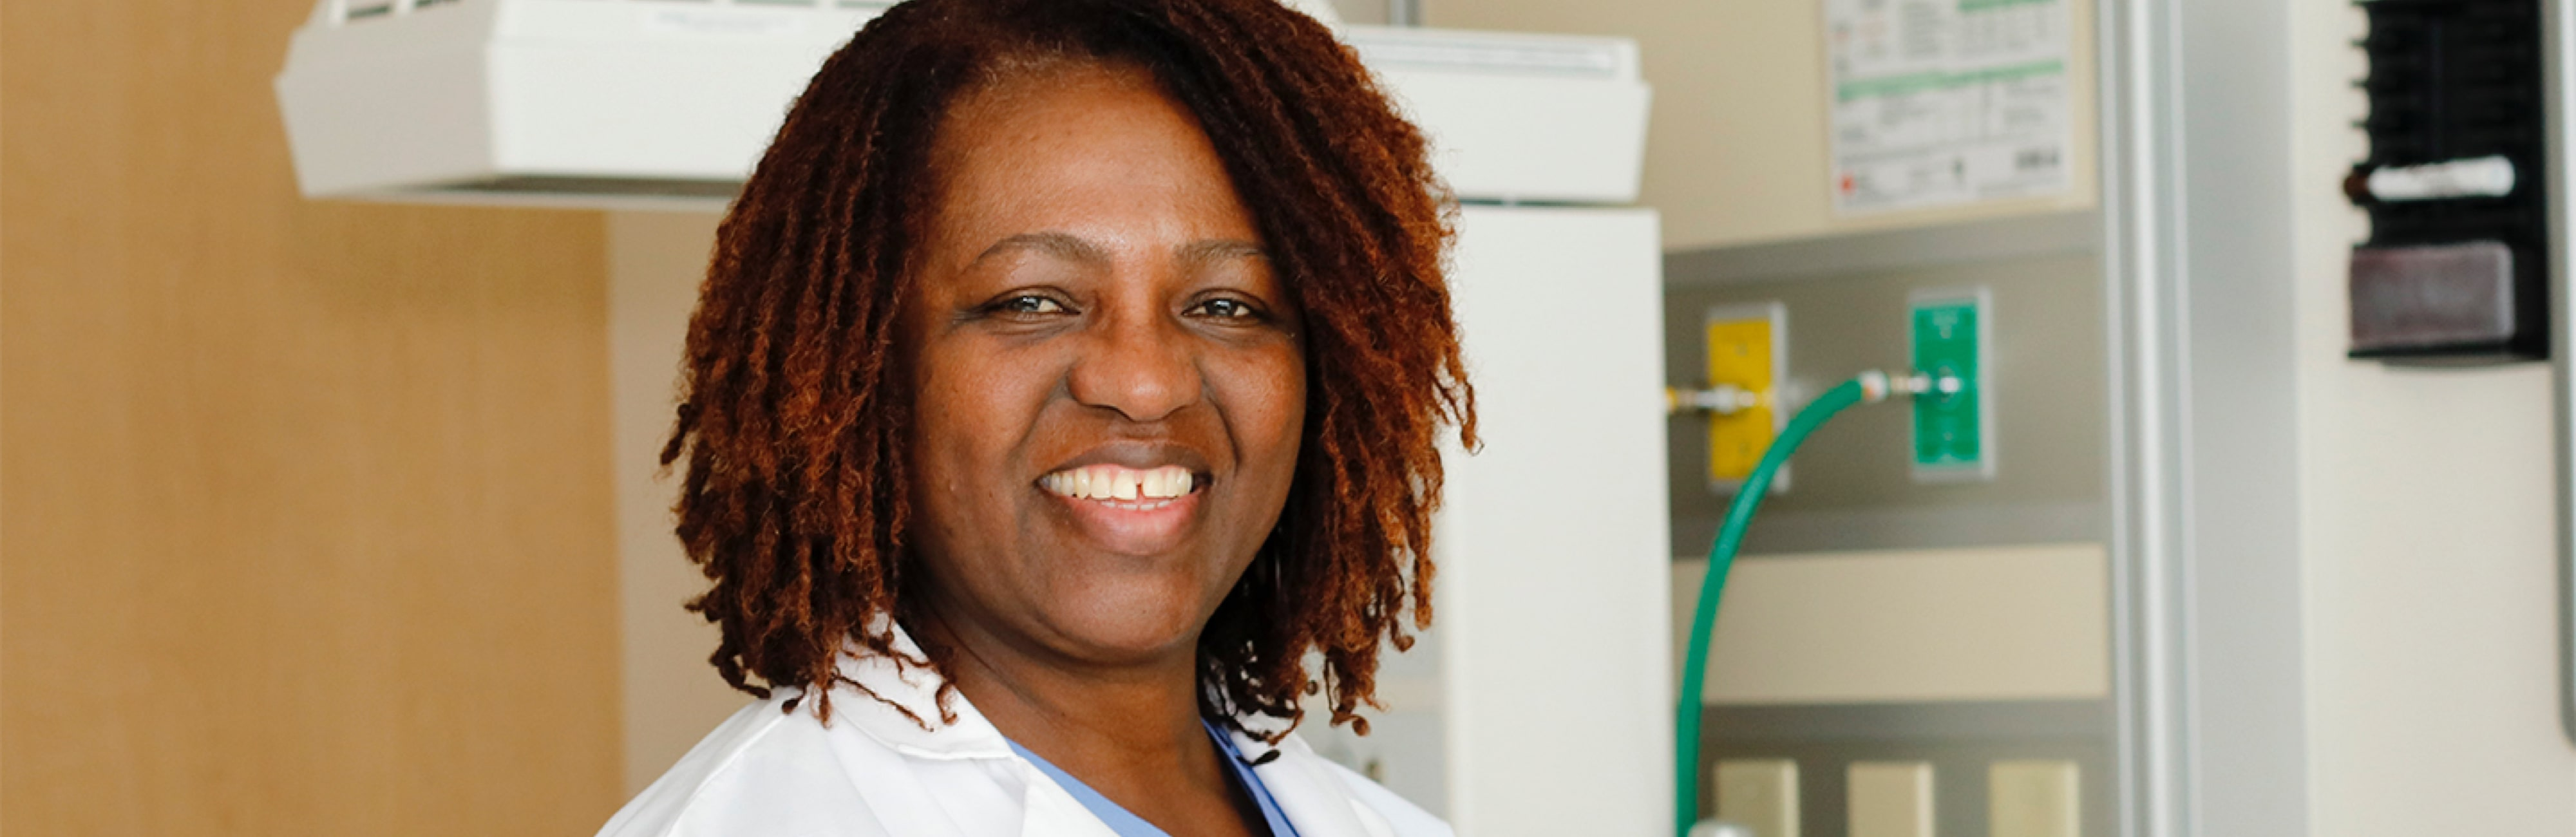 Registered nurse and midwife Angela Sojobi in the MLKCH maternity department